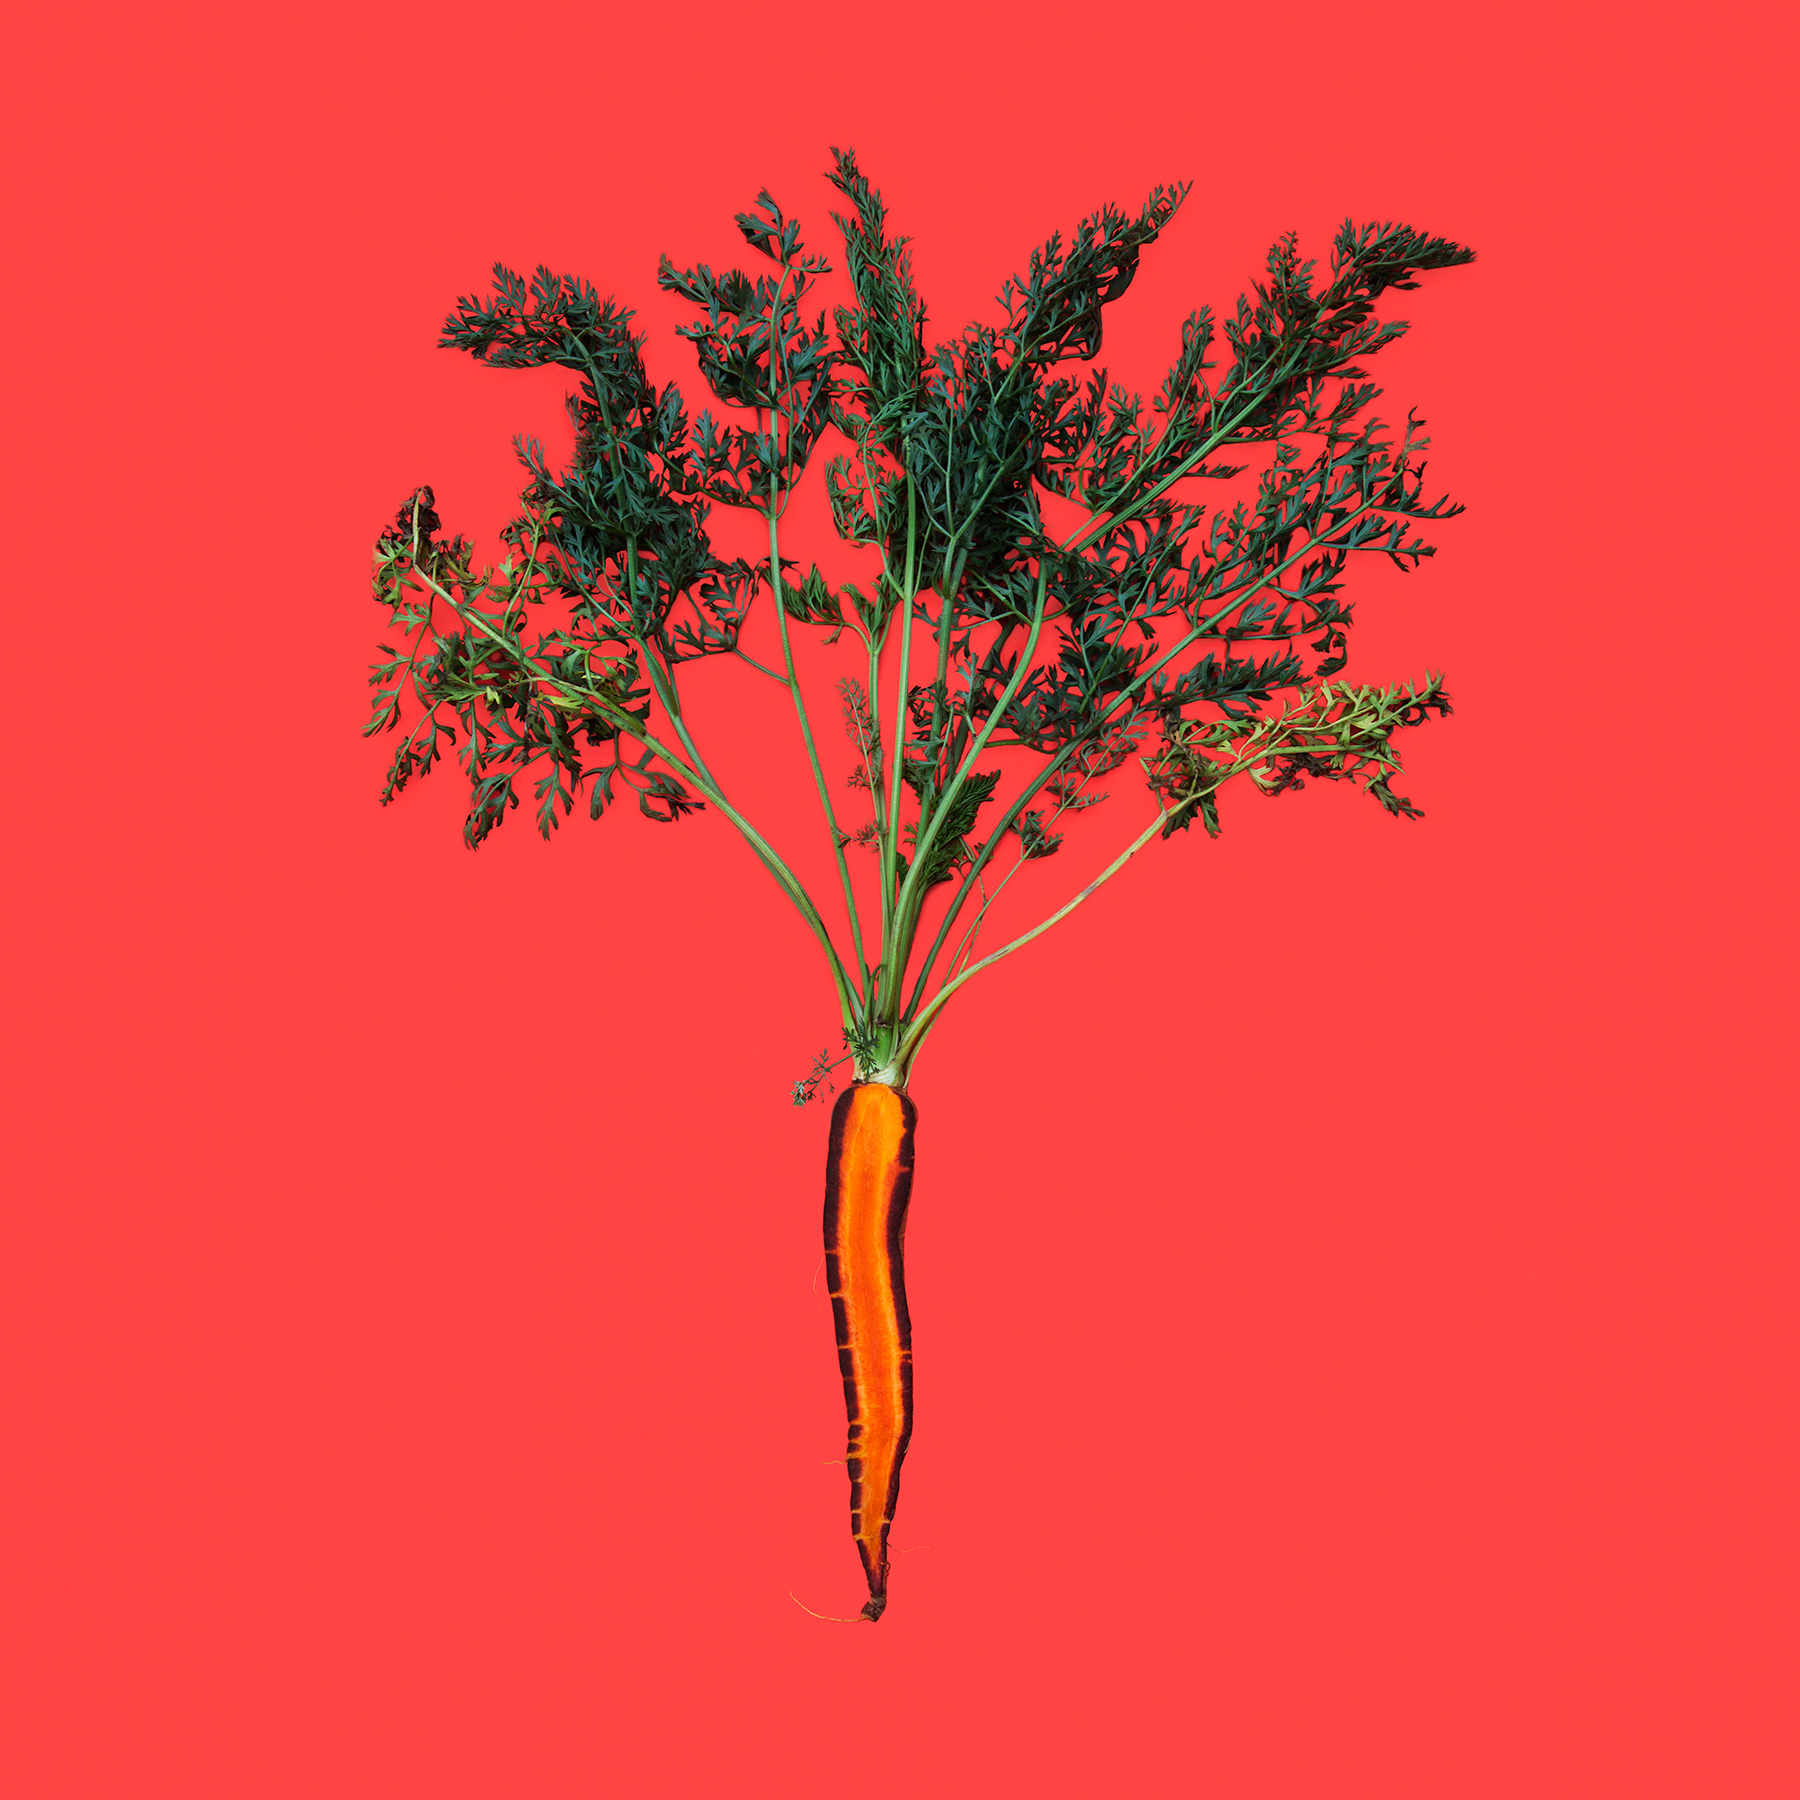 CARROT-PURPLE-DRAGON-ORGANC-RIDGWAY-FARM-ORGANIC-VEGETABLE-©-JONATHAN-R.-BECKERMAN-PHOTOGRAPHY-01.jpg